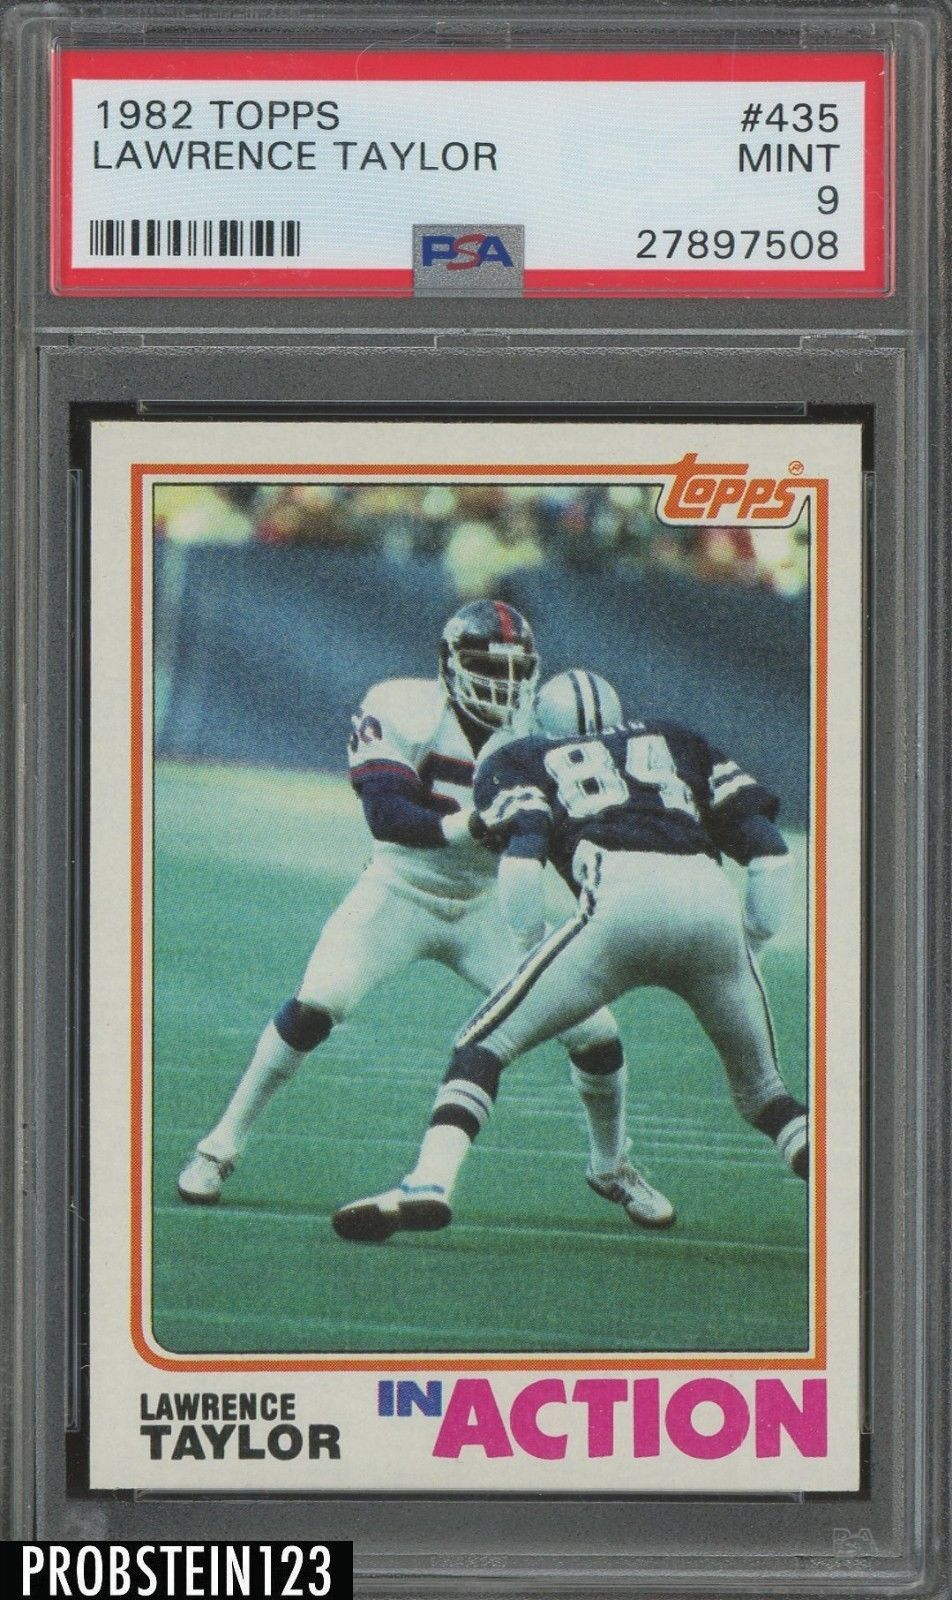 1982 Football Topps 435 Lawrence Taylor Action PSA 9 MINT